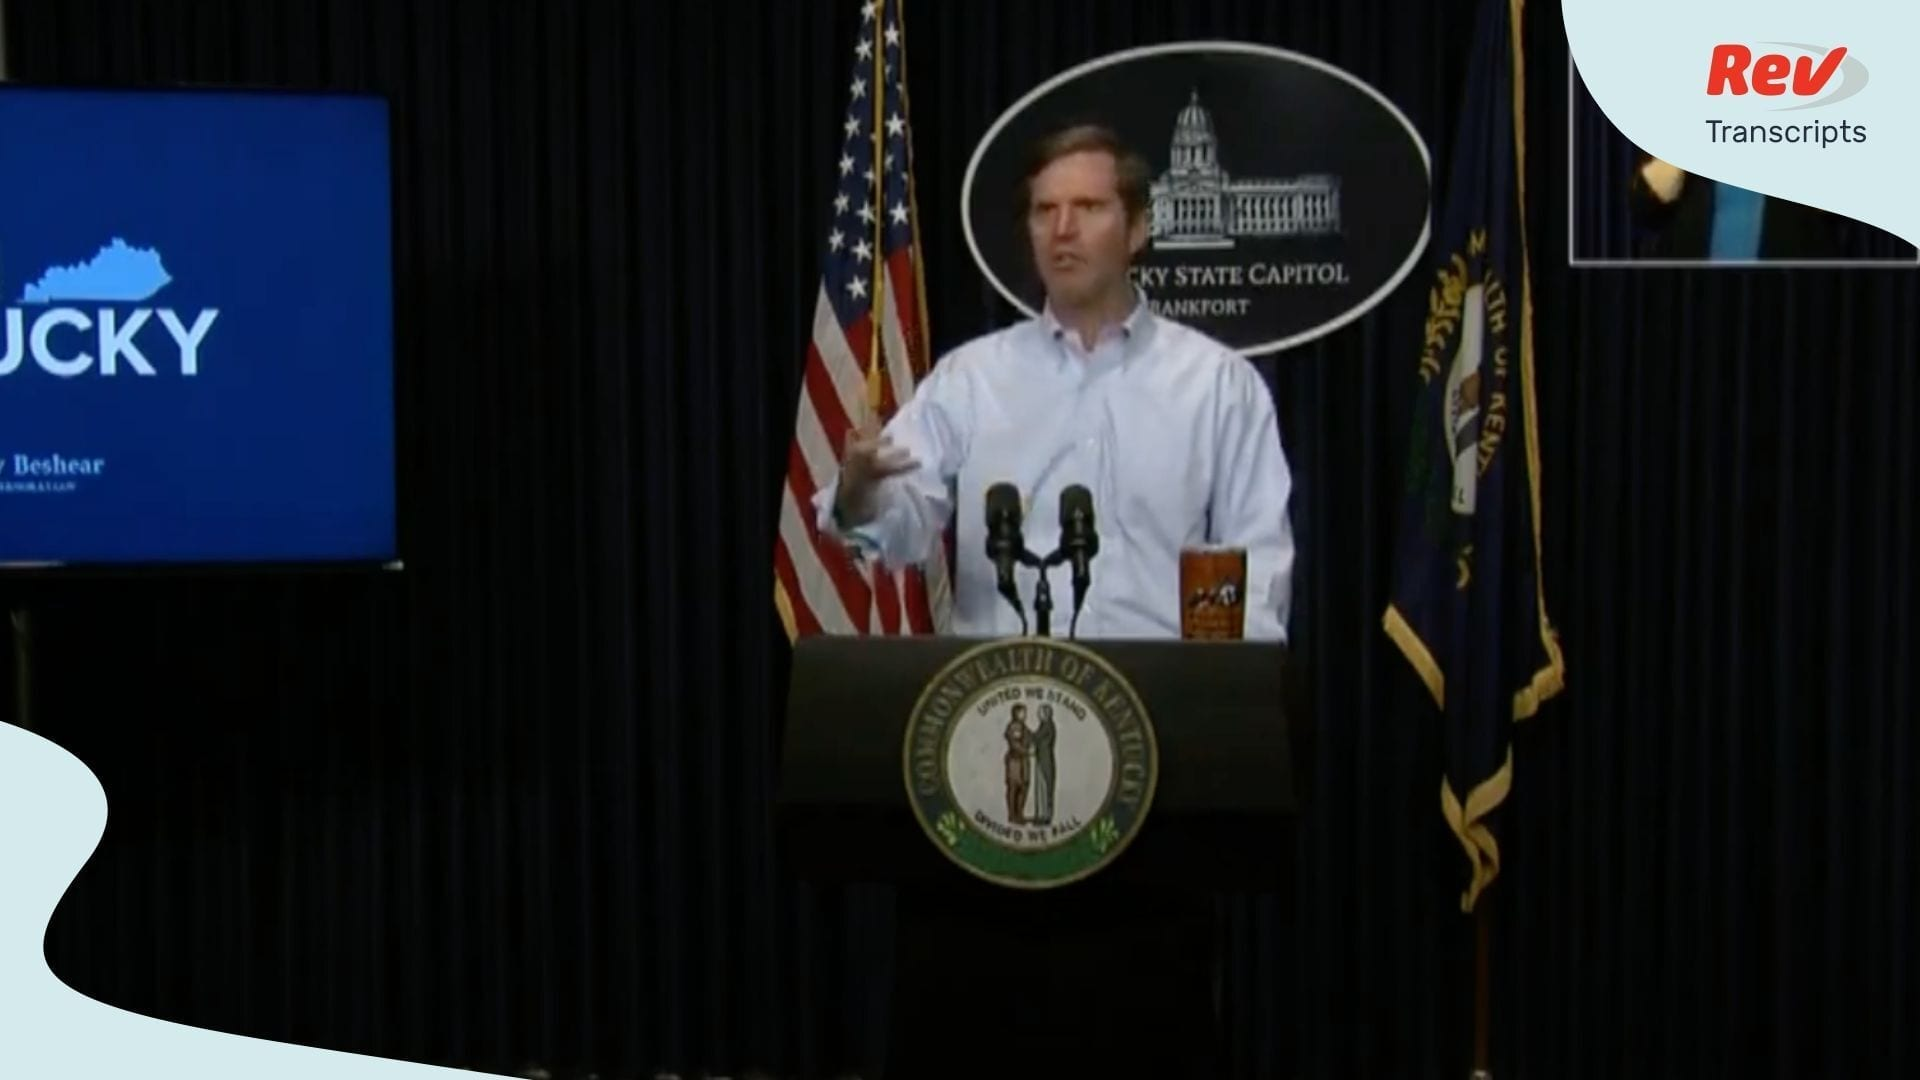 Kentucky Briefing April 15